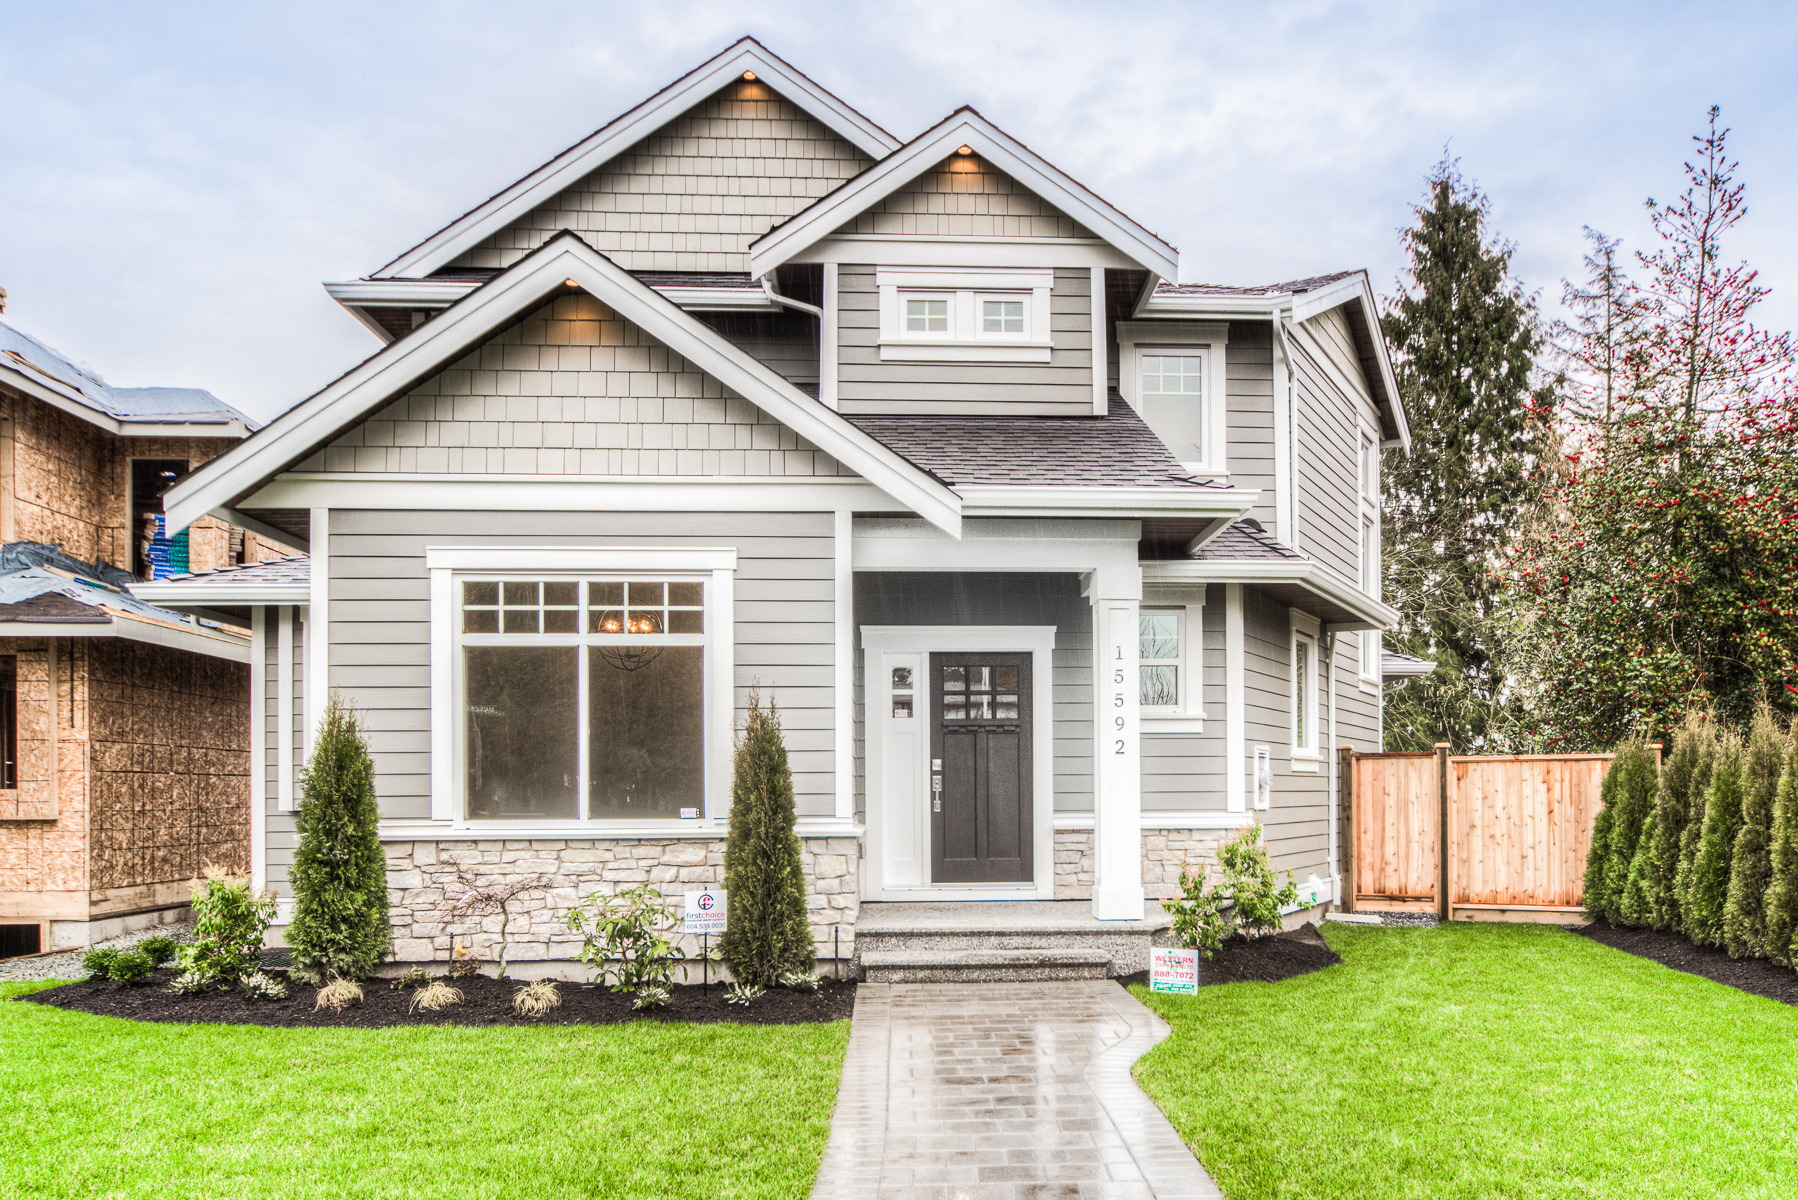 15592-Madrona-Dr-Sry-360hometours-02s.jpg